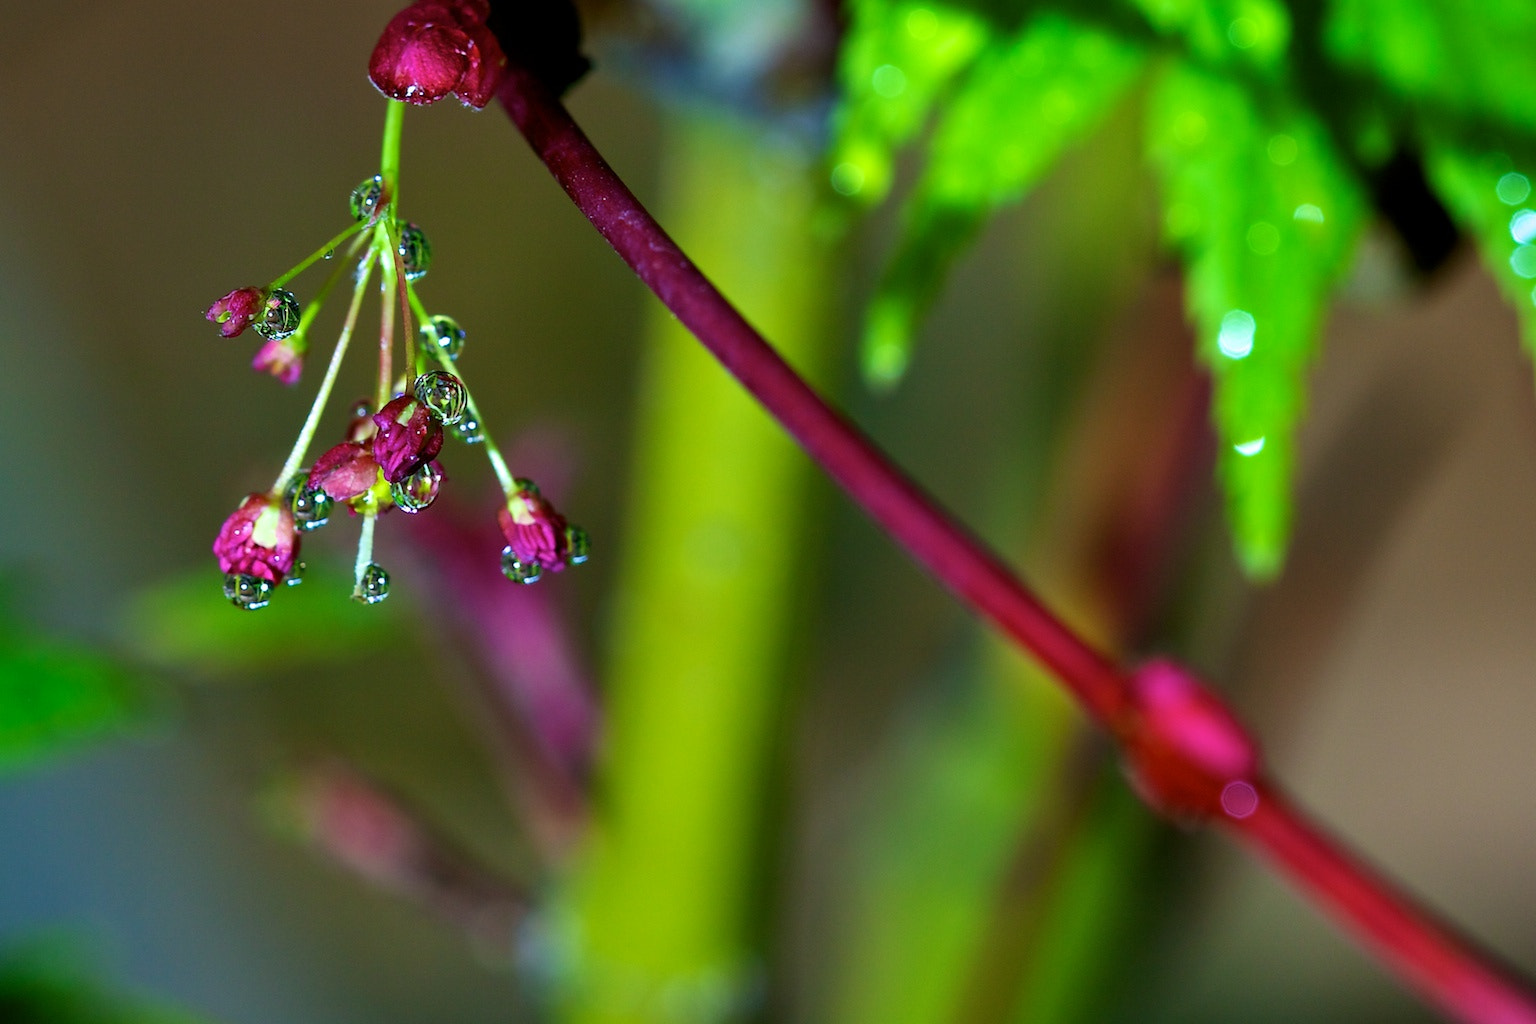 Photograph Dangling Dew by Earl Bones on 500px